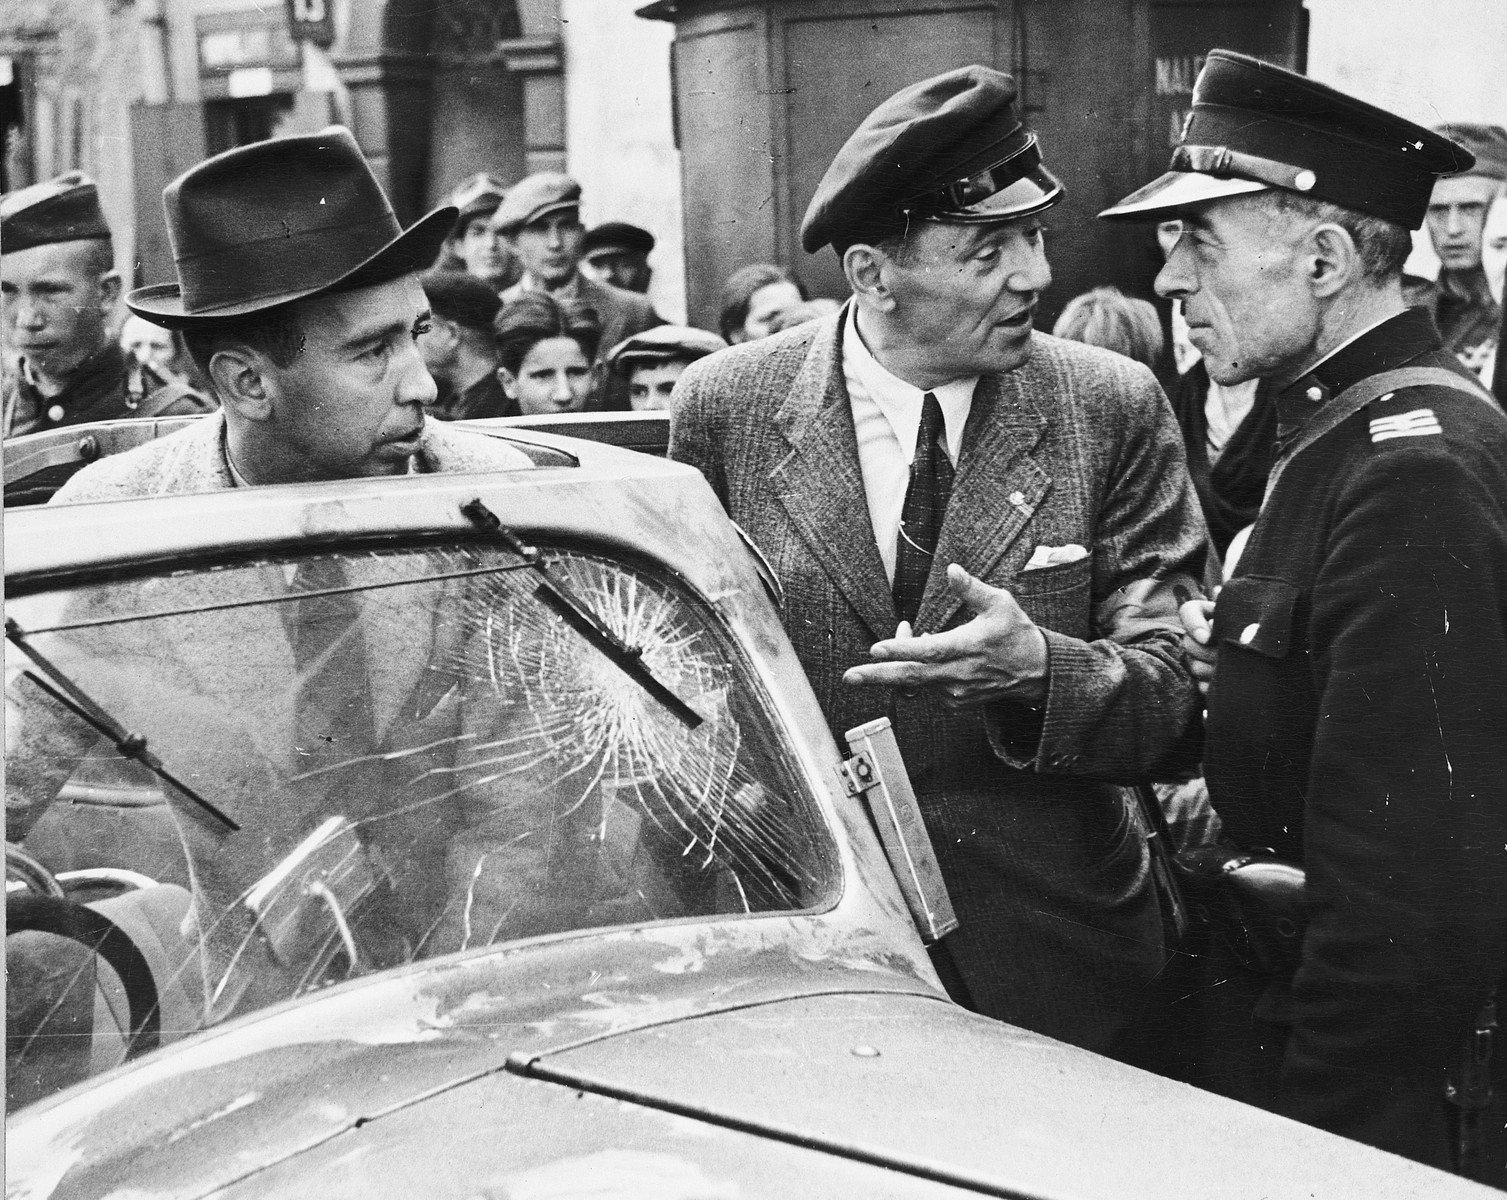 A crowd of Polish civilians watches as Julien Bryan's interpreter explains to a policeman that the man in the turned-up fedora is American photographer, Julien Bryan and not a German spy.